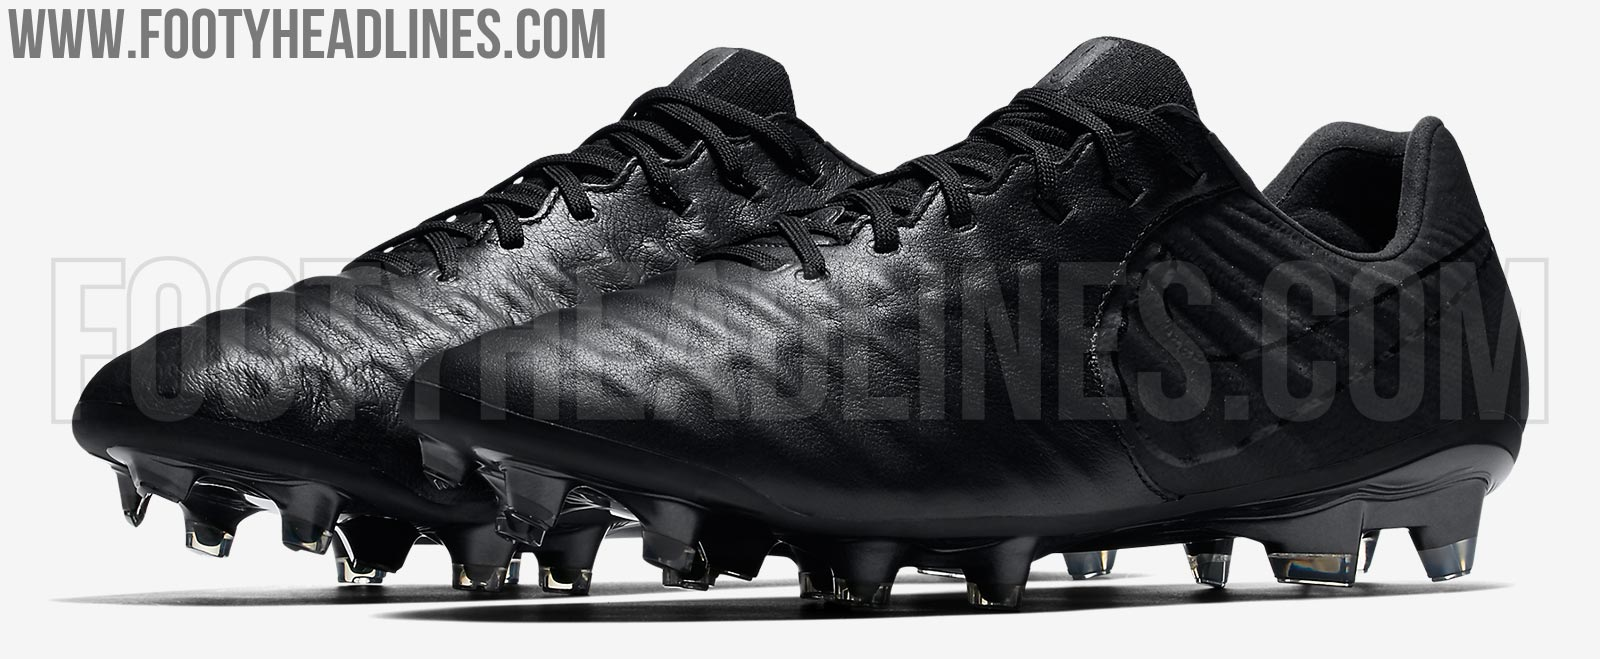 pure class blackout nike tiempo legend vii boots leaked. Black Bedroom Furniture Sets. Home Design Ideas